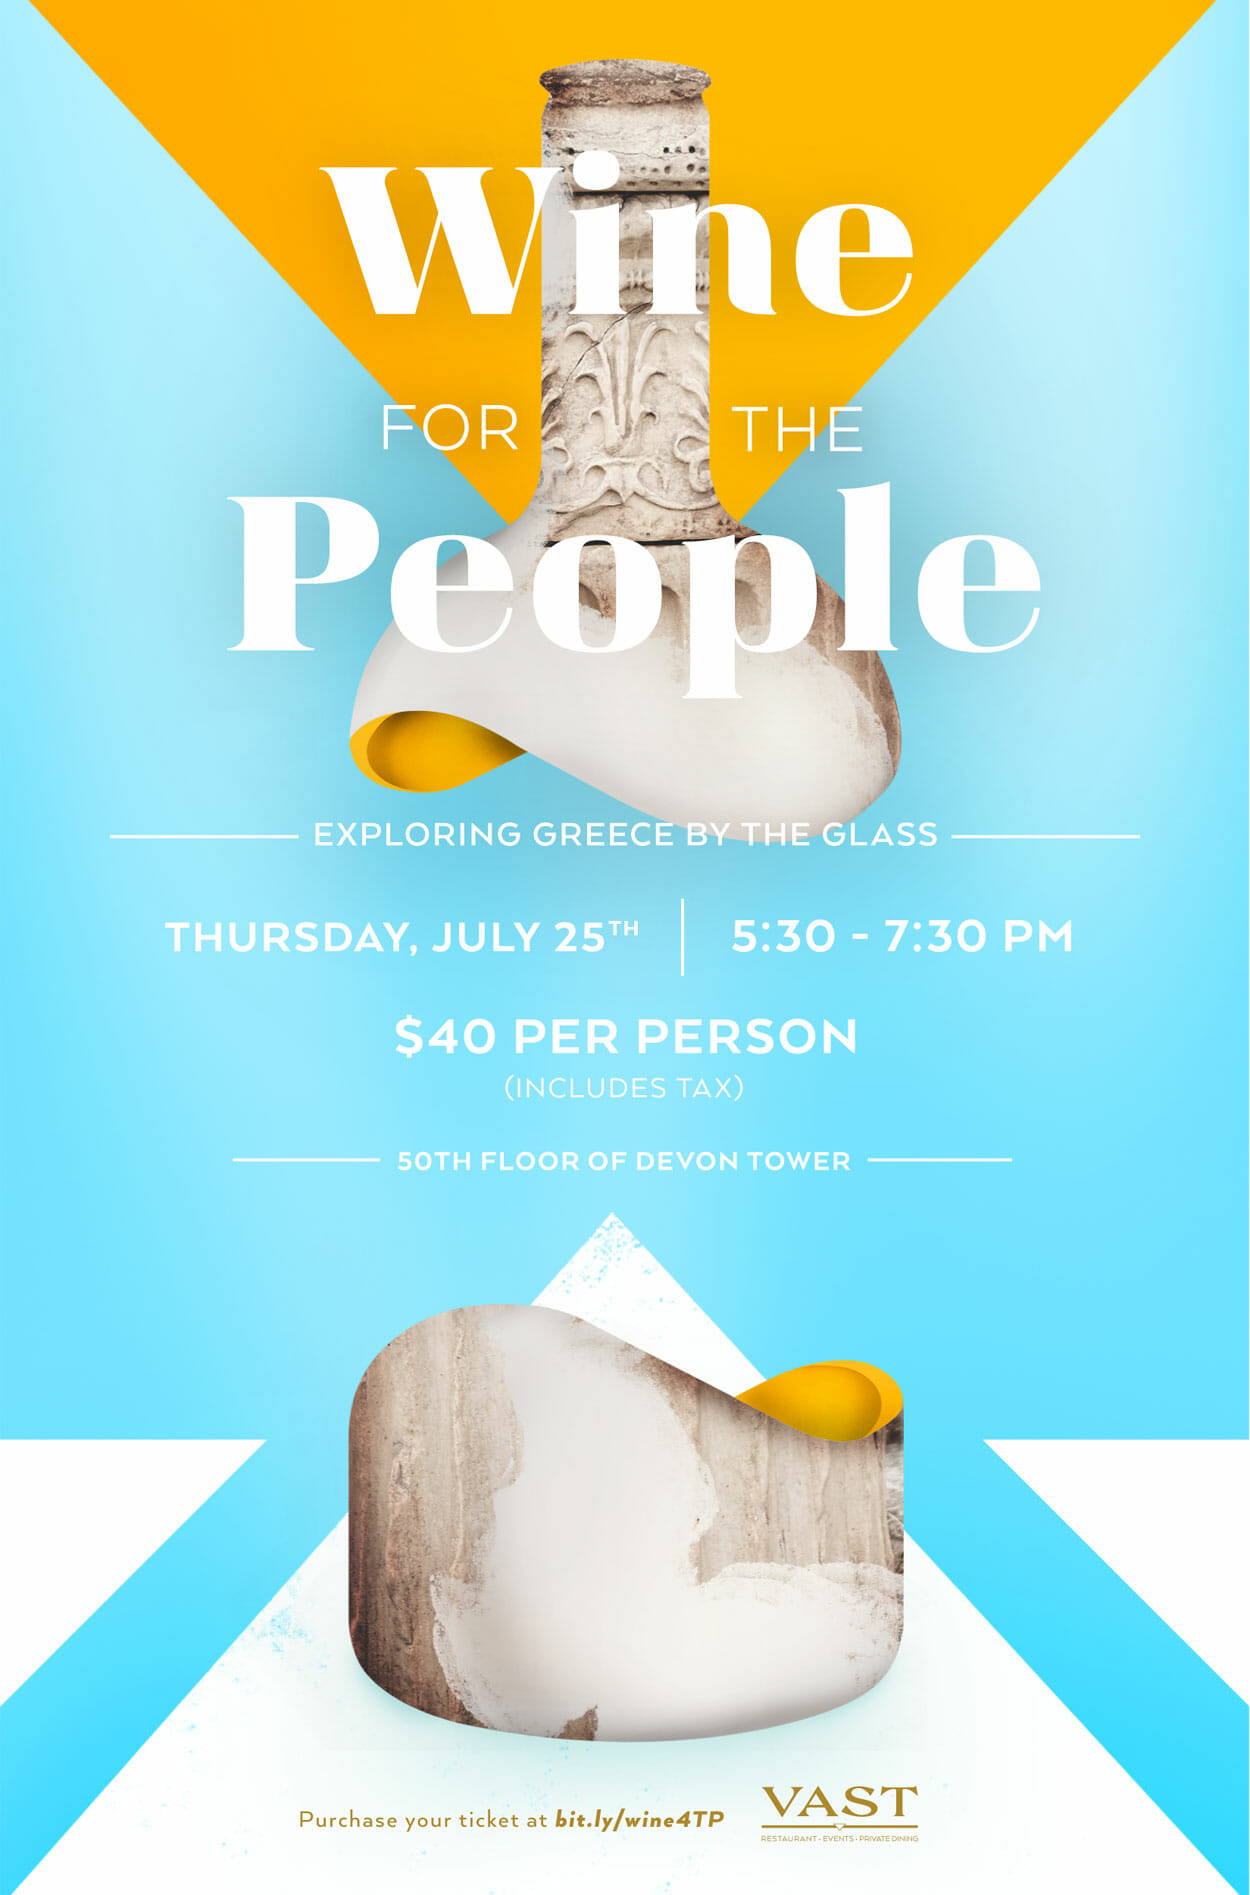 Wine FOR THE People THURSDAY, JULY 25TH 5:30 - 7:30 PM $40 PER PERSON 50TH FLOOR OF DEVON TOWER